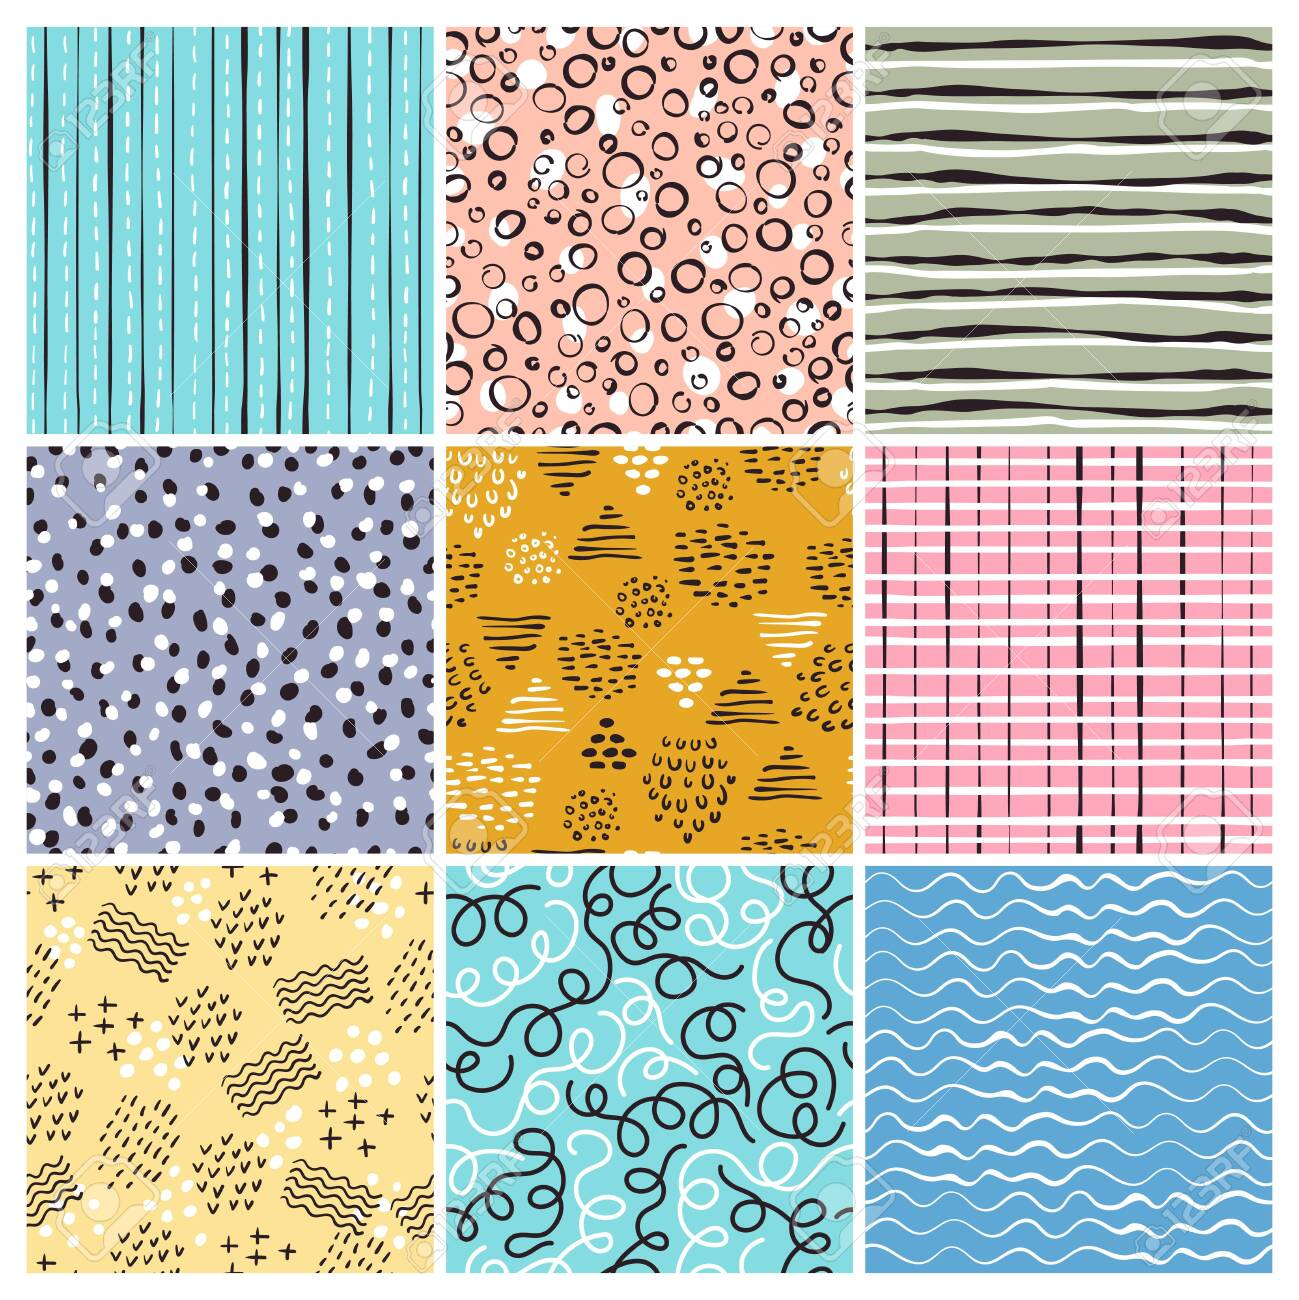 Childish Style Pattern Simple Lines Abstract Shapes Doodles Stripes Vector Seamless Textile Design Projects Illustration Of Childish Wallpaper And